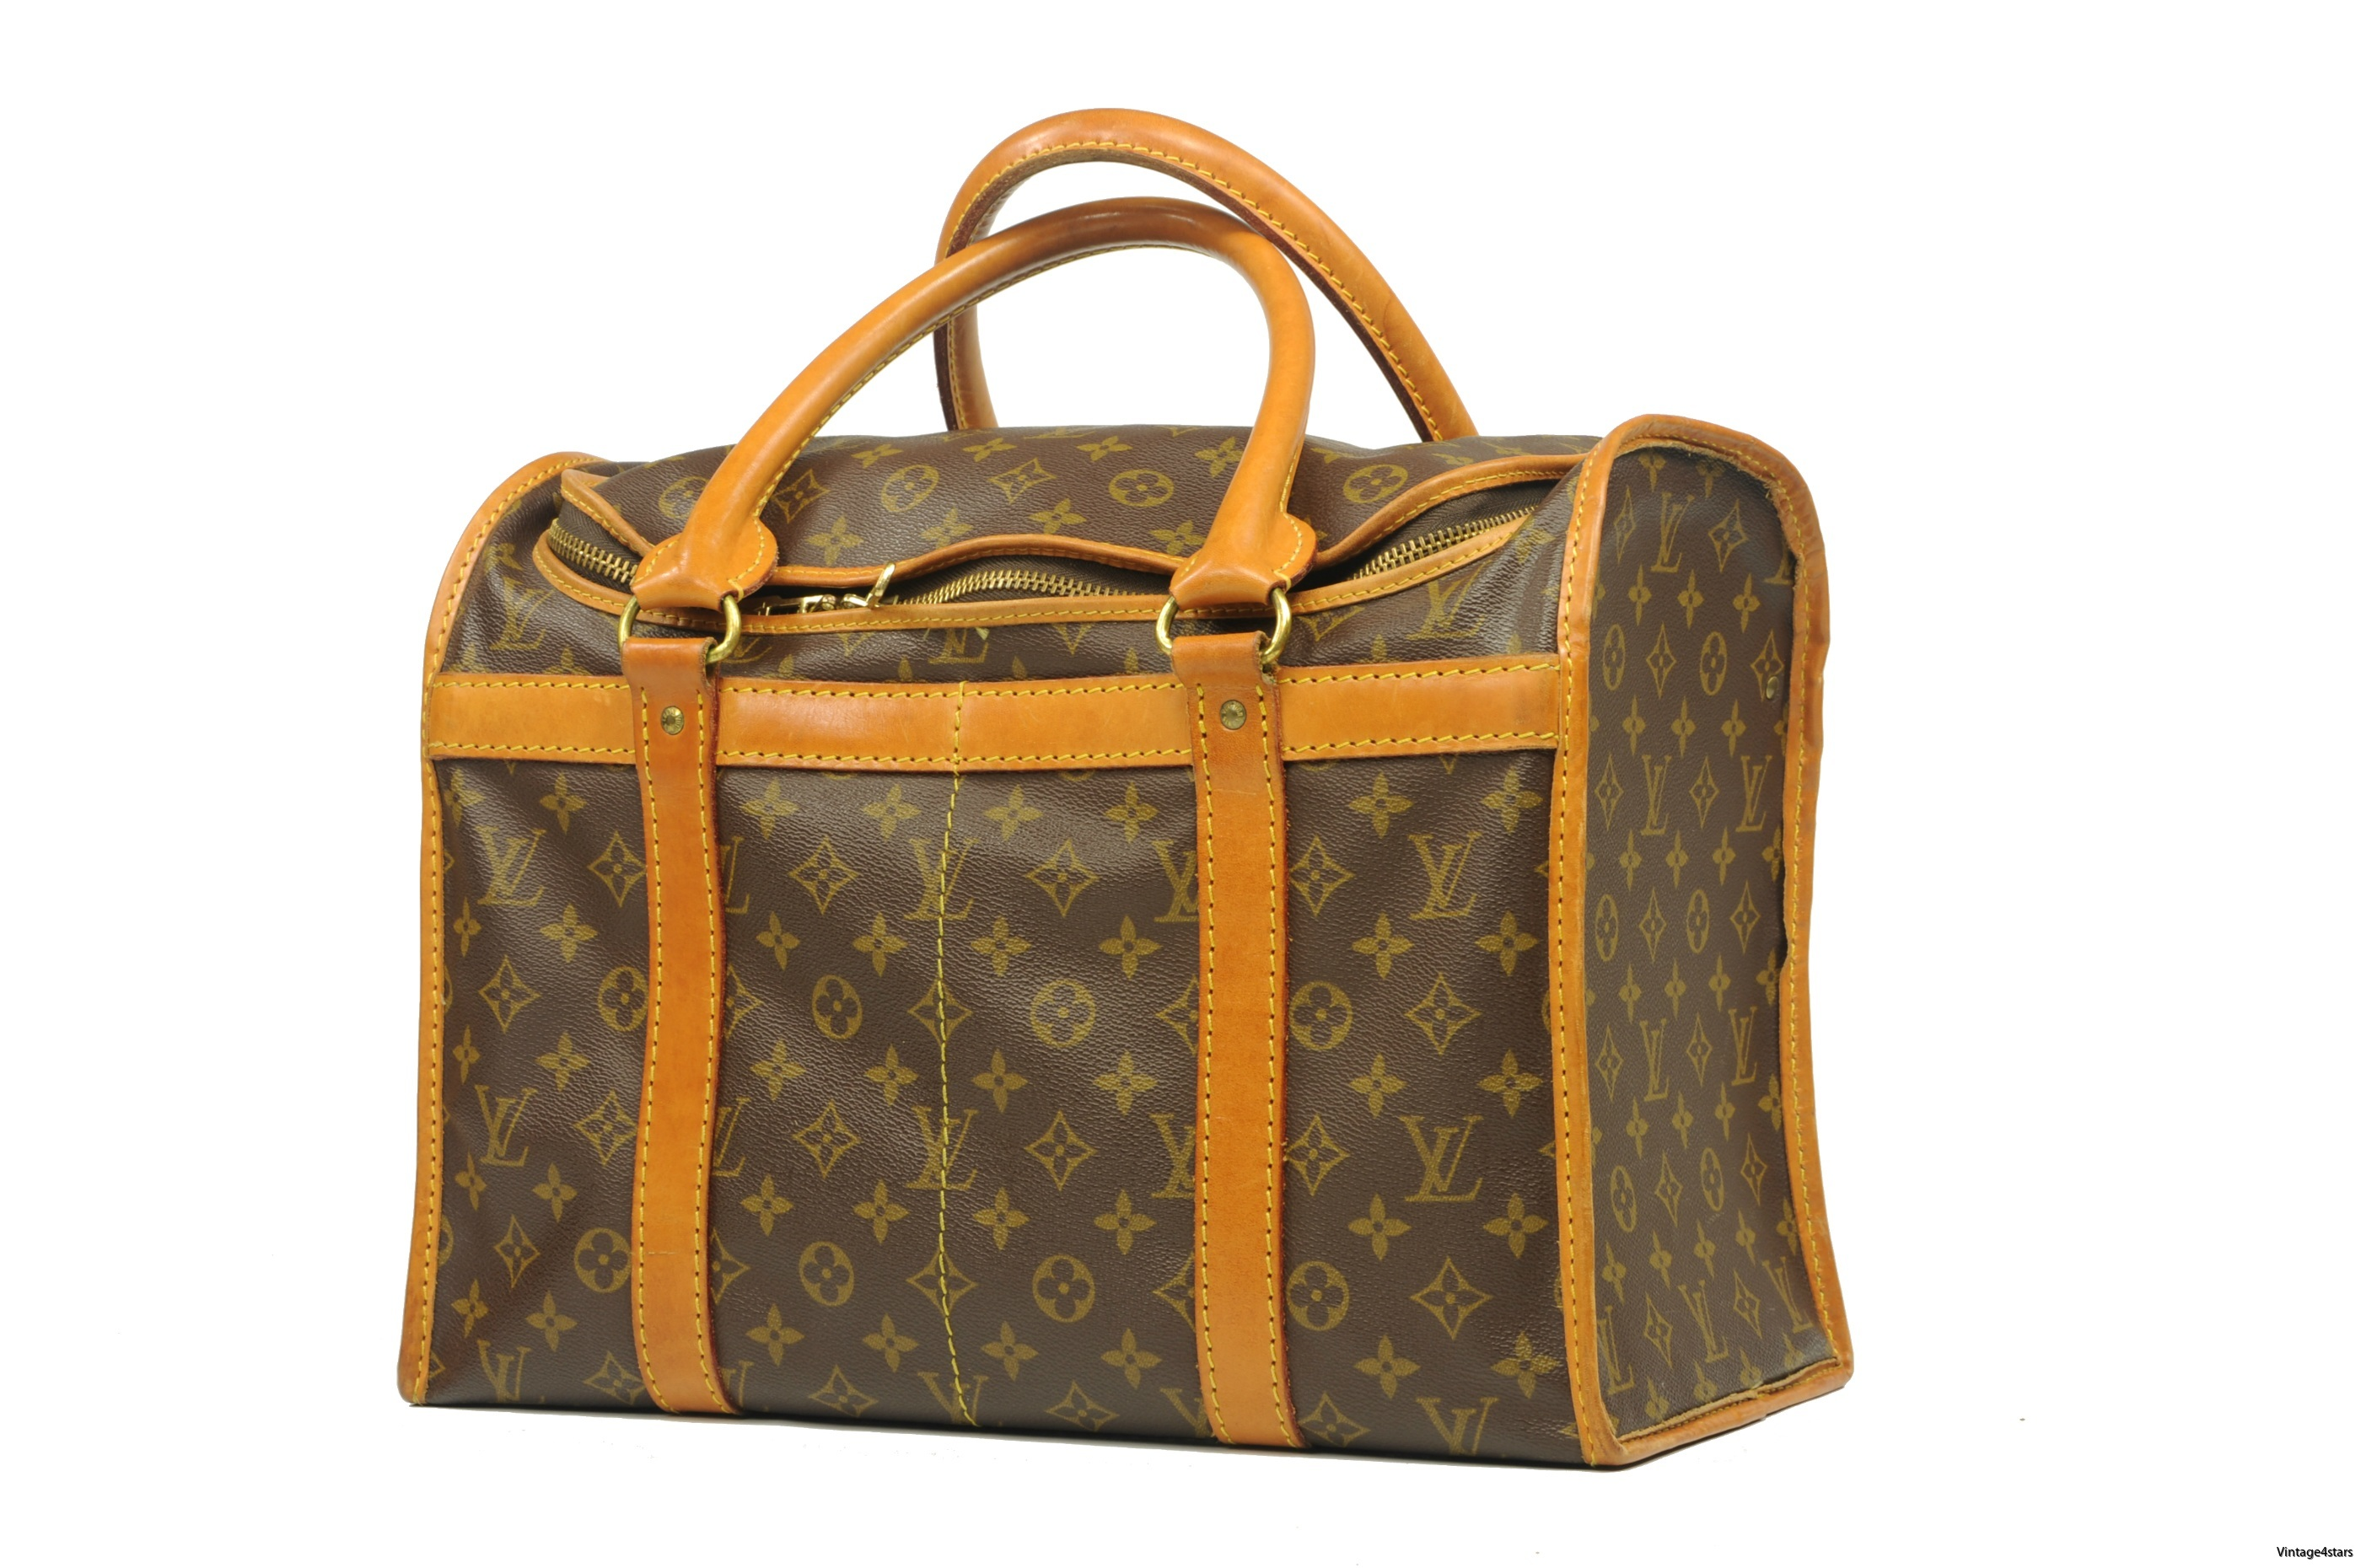 Louis Vuitton Sac Chien 40 1